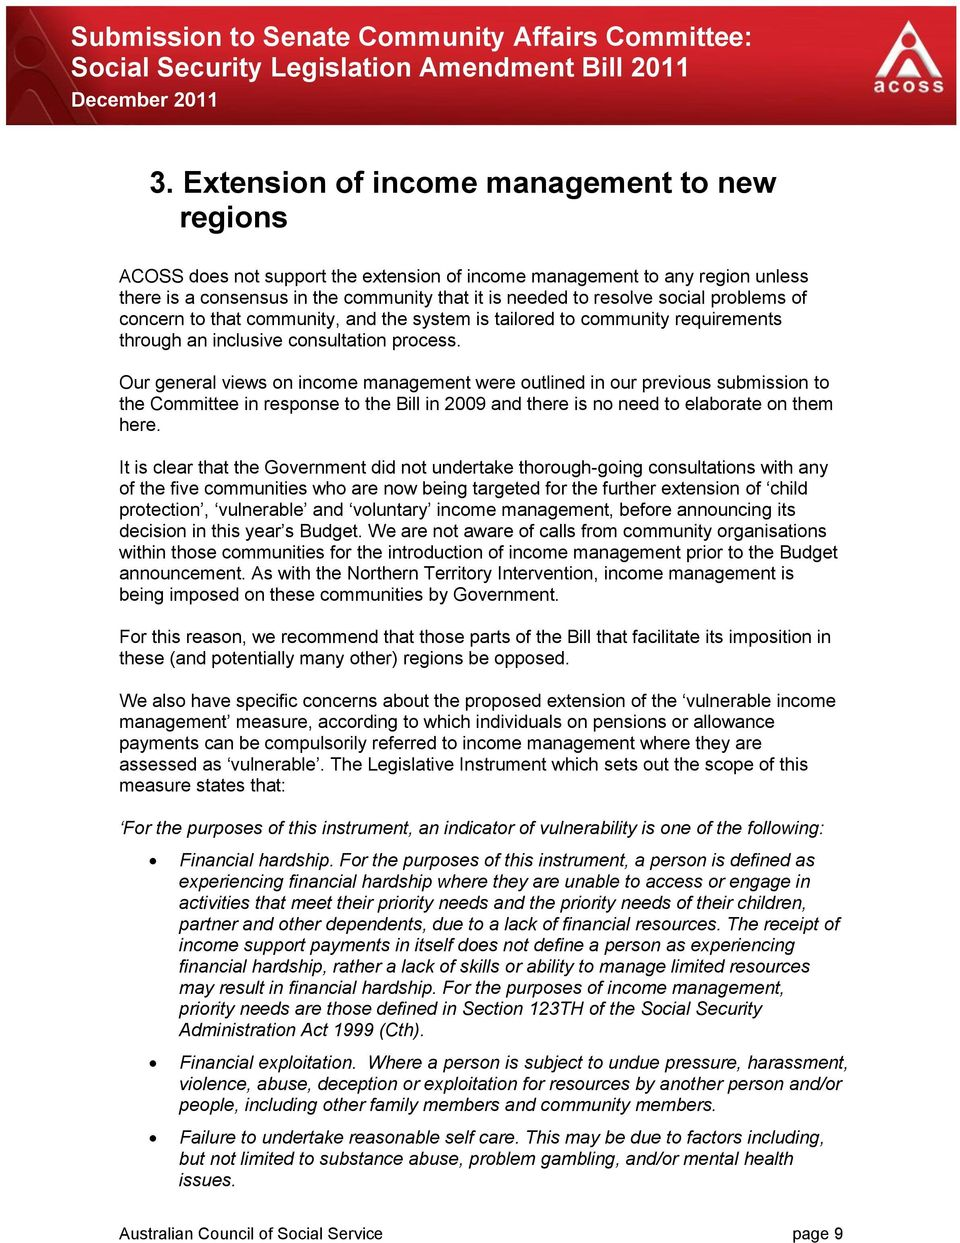 Our general views on income management were outlined in our previous submission to the Committee in response to the Bill in 2009 and there is no need to elaborate on them here.